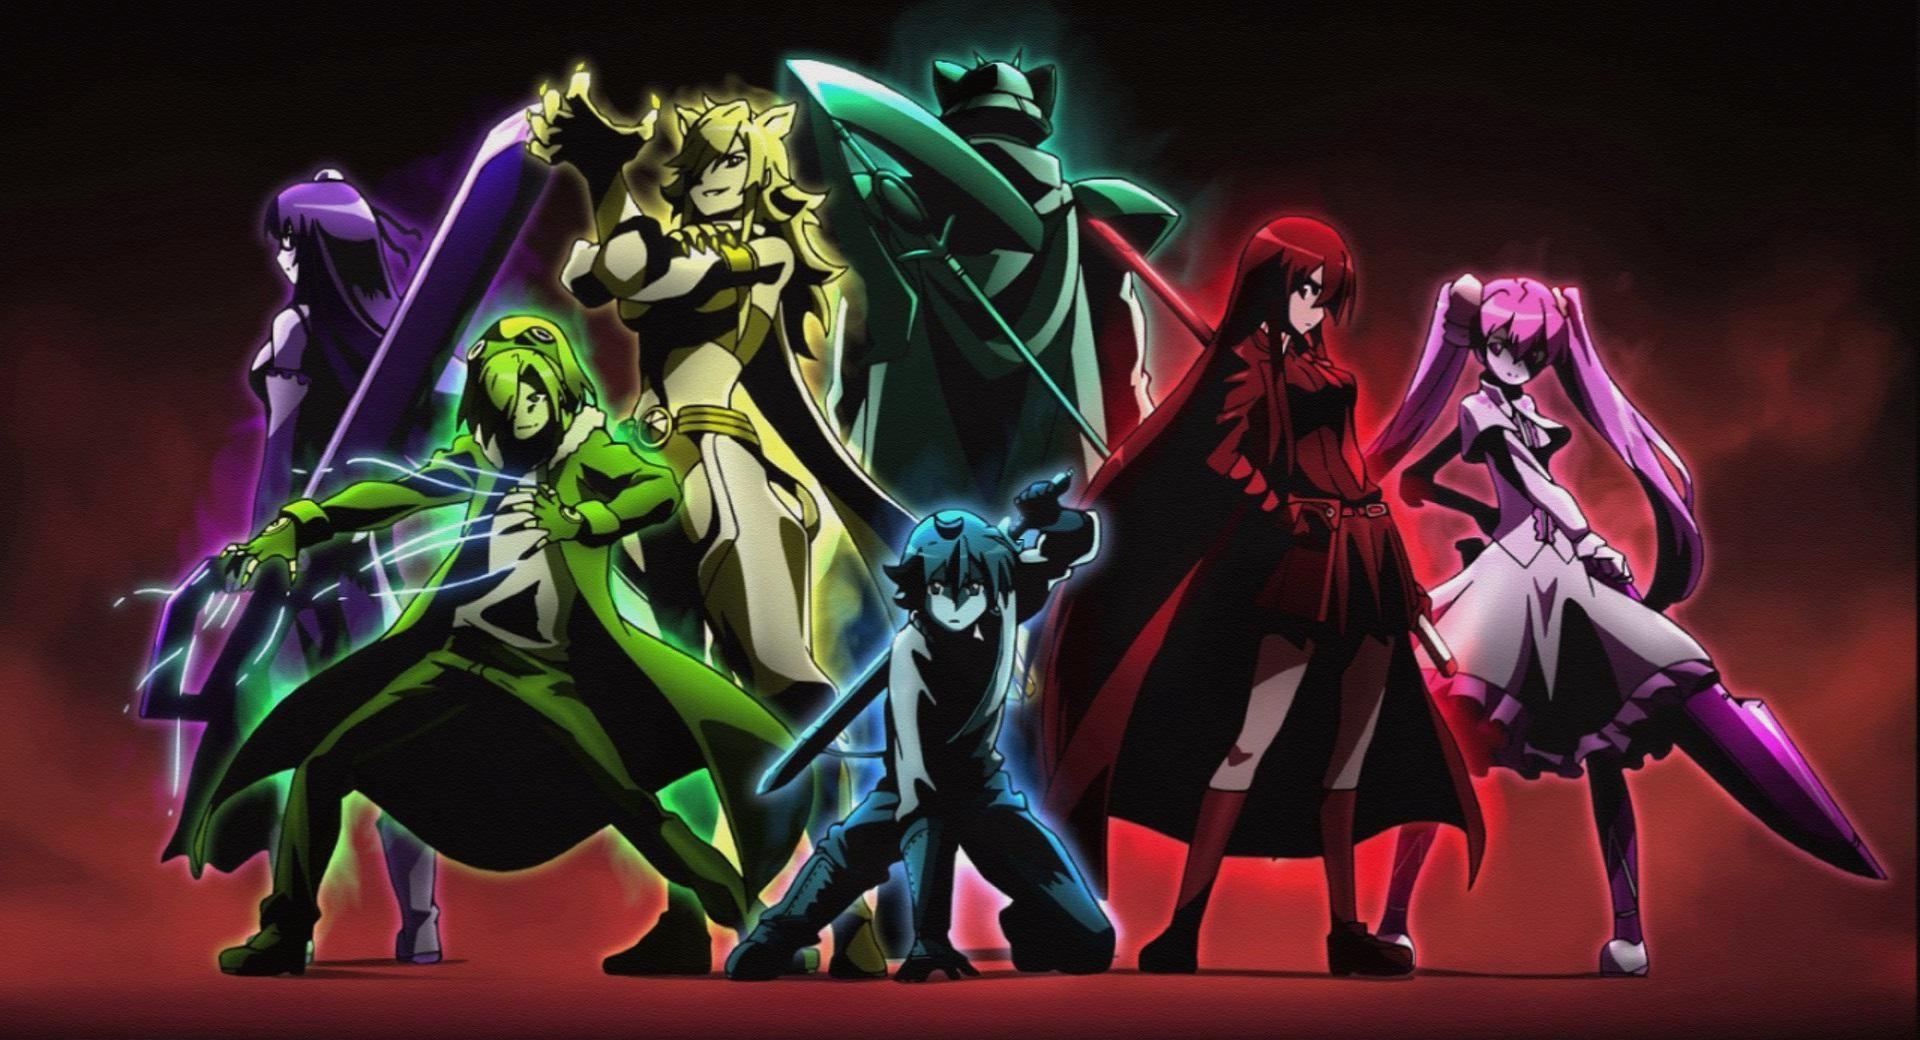 Akame Ga Kill Wallpaper: Akame Ga Kill Wallpaper HD Download